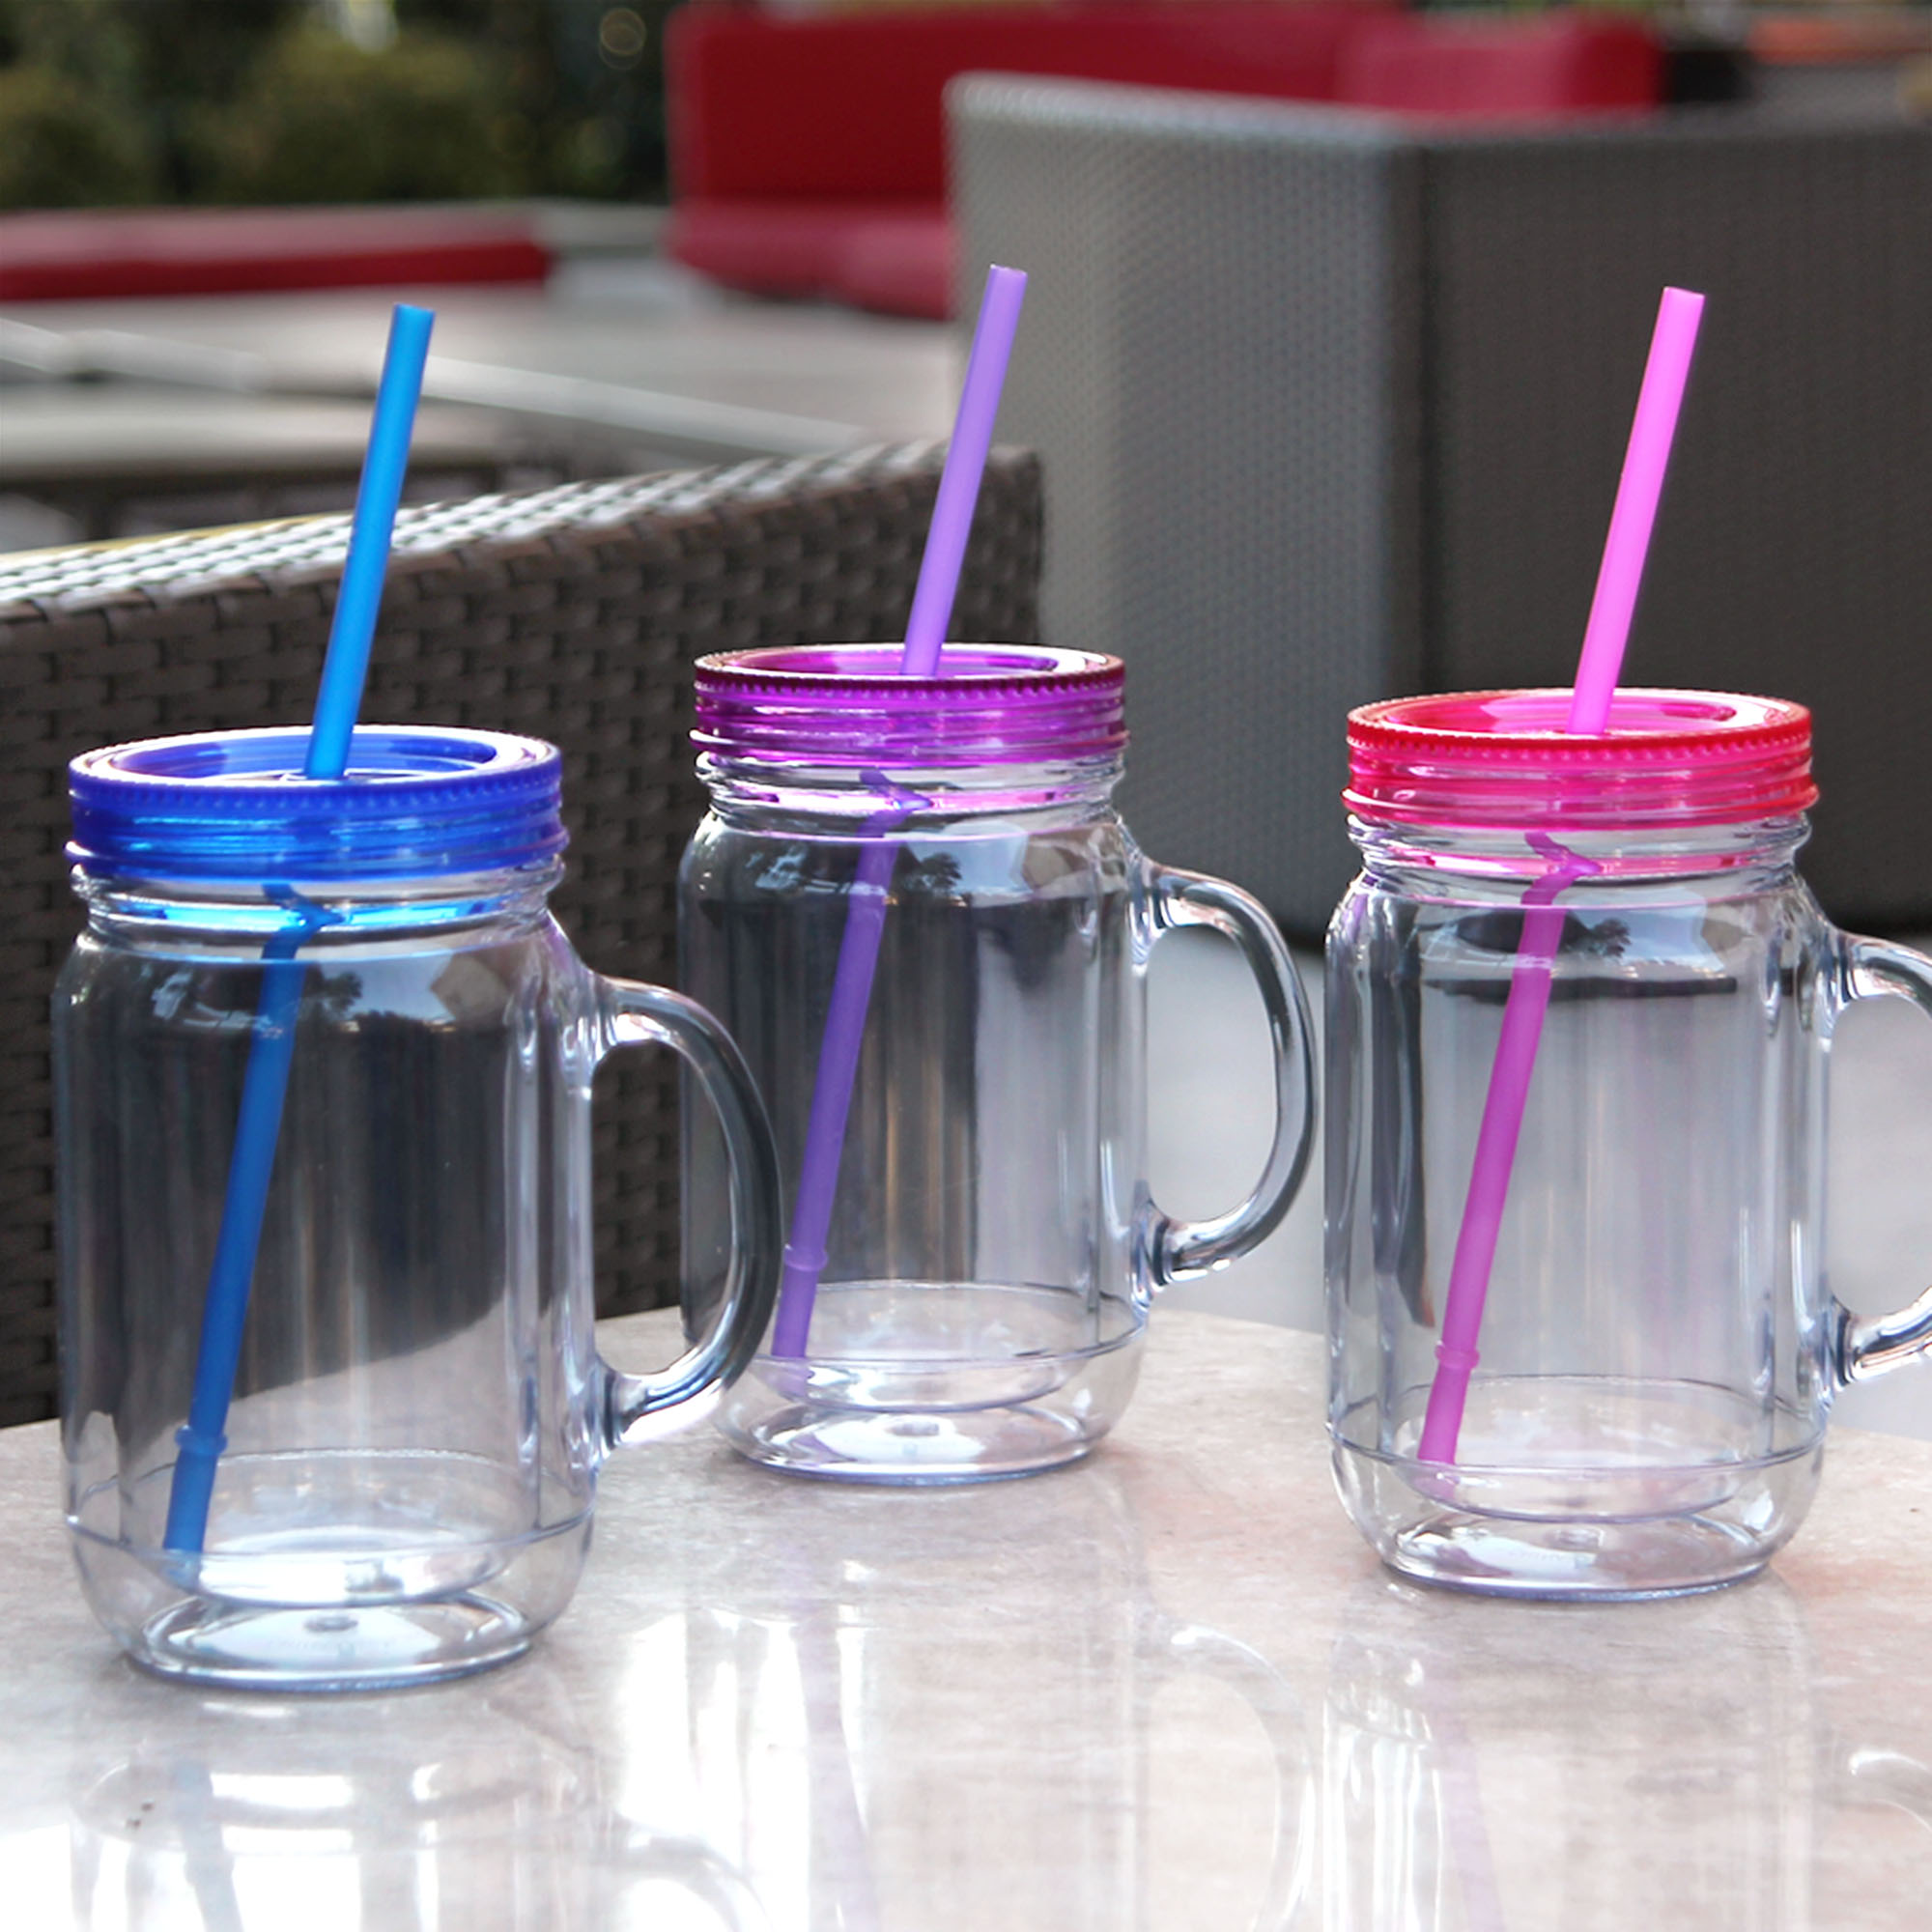 Cupture Double Wall Insulated Plastic Mason Jar Tumbler Mug - 16 oz, 3 Pack